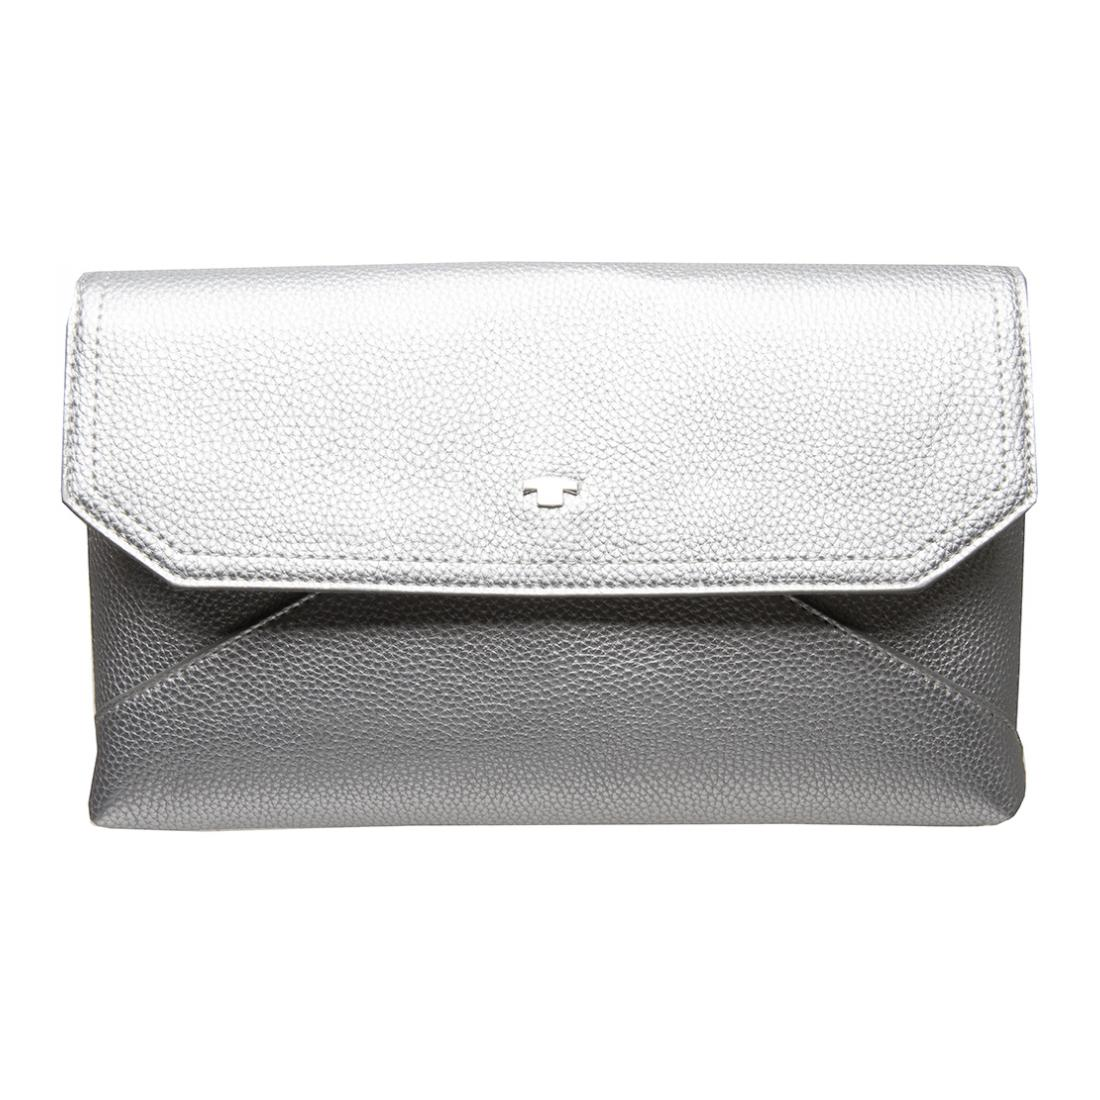 Tom Tailor clutch VITTORIA